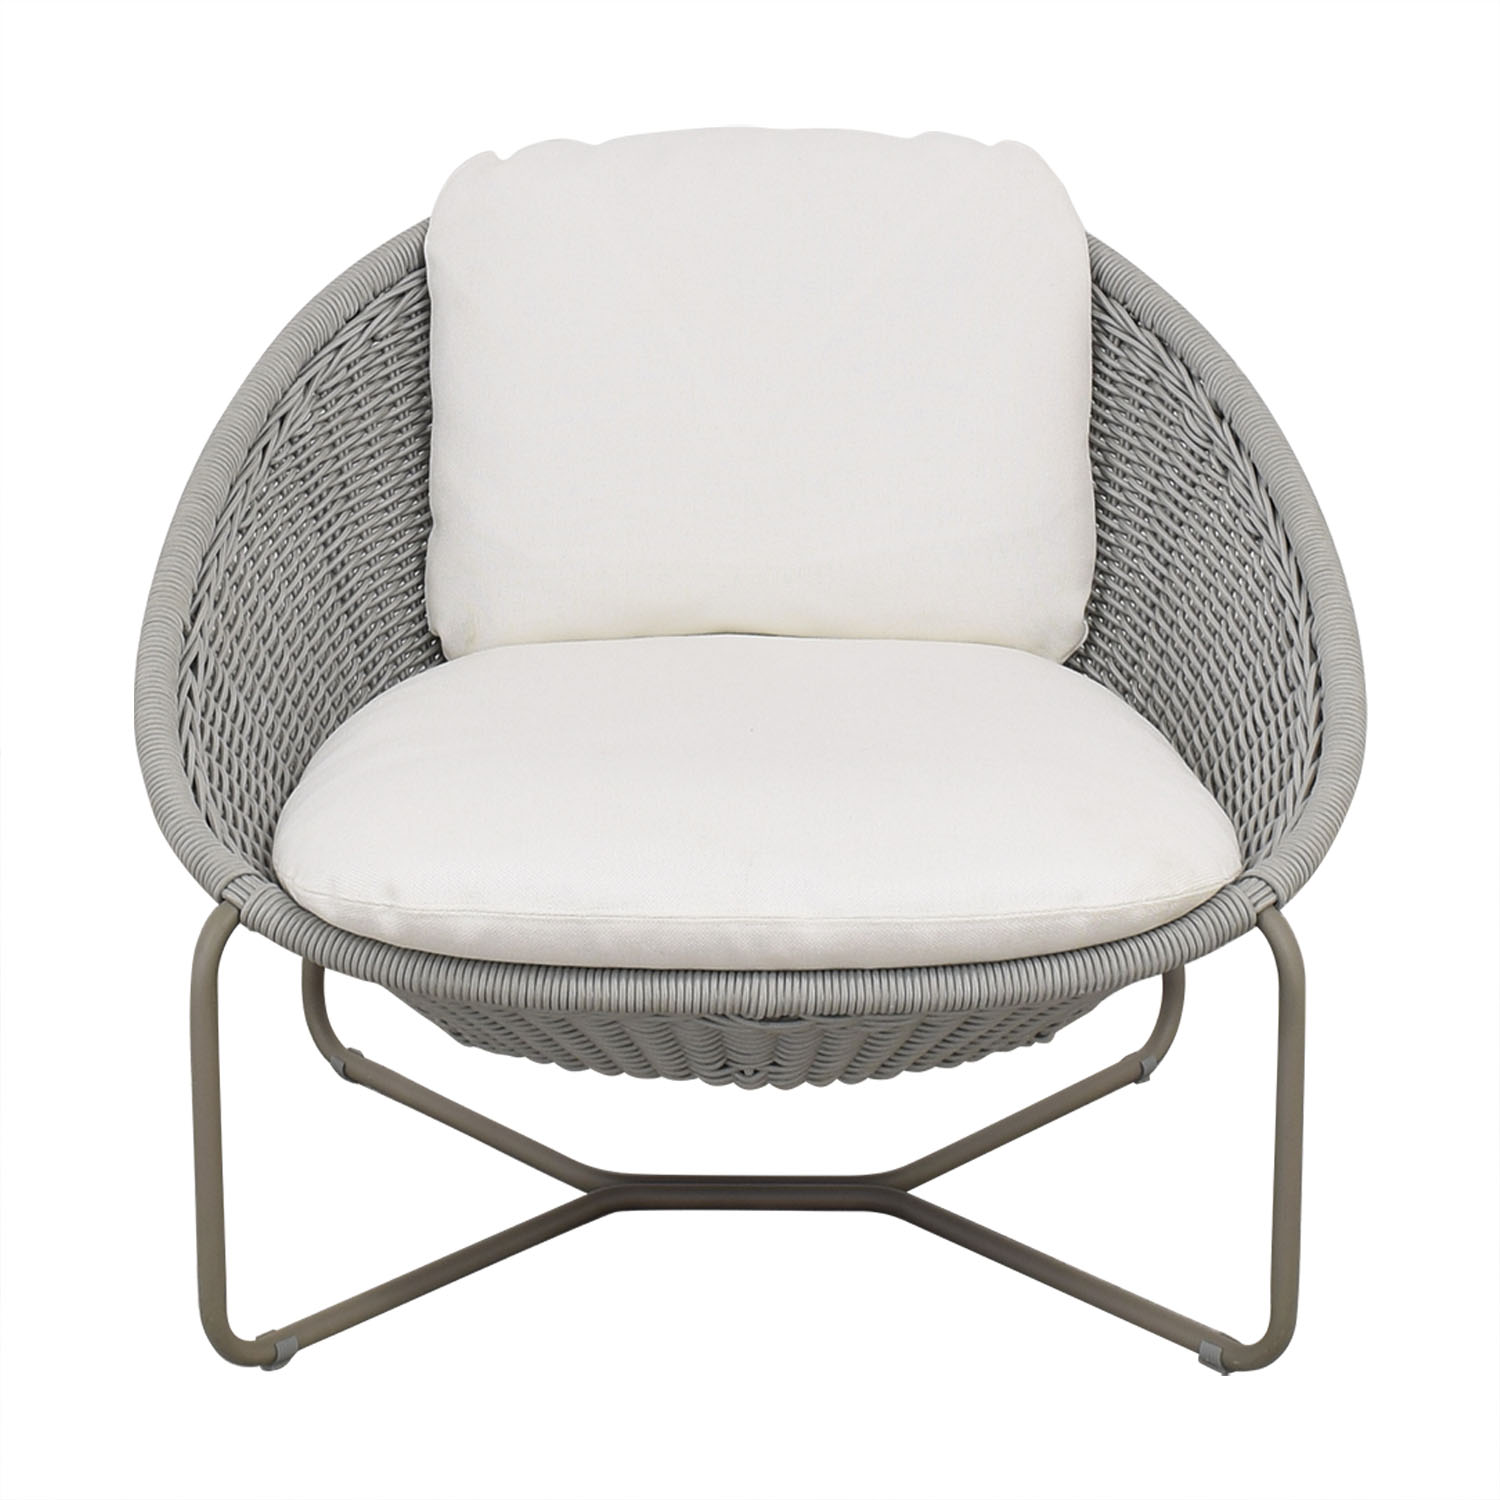 Crate & Barrel Morocco Oval Lounge Chair with Cushion / Accent Chairs